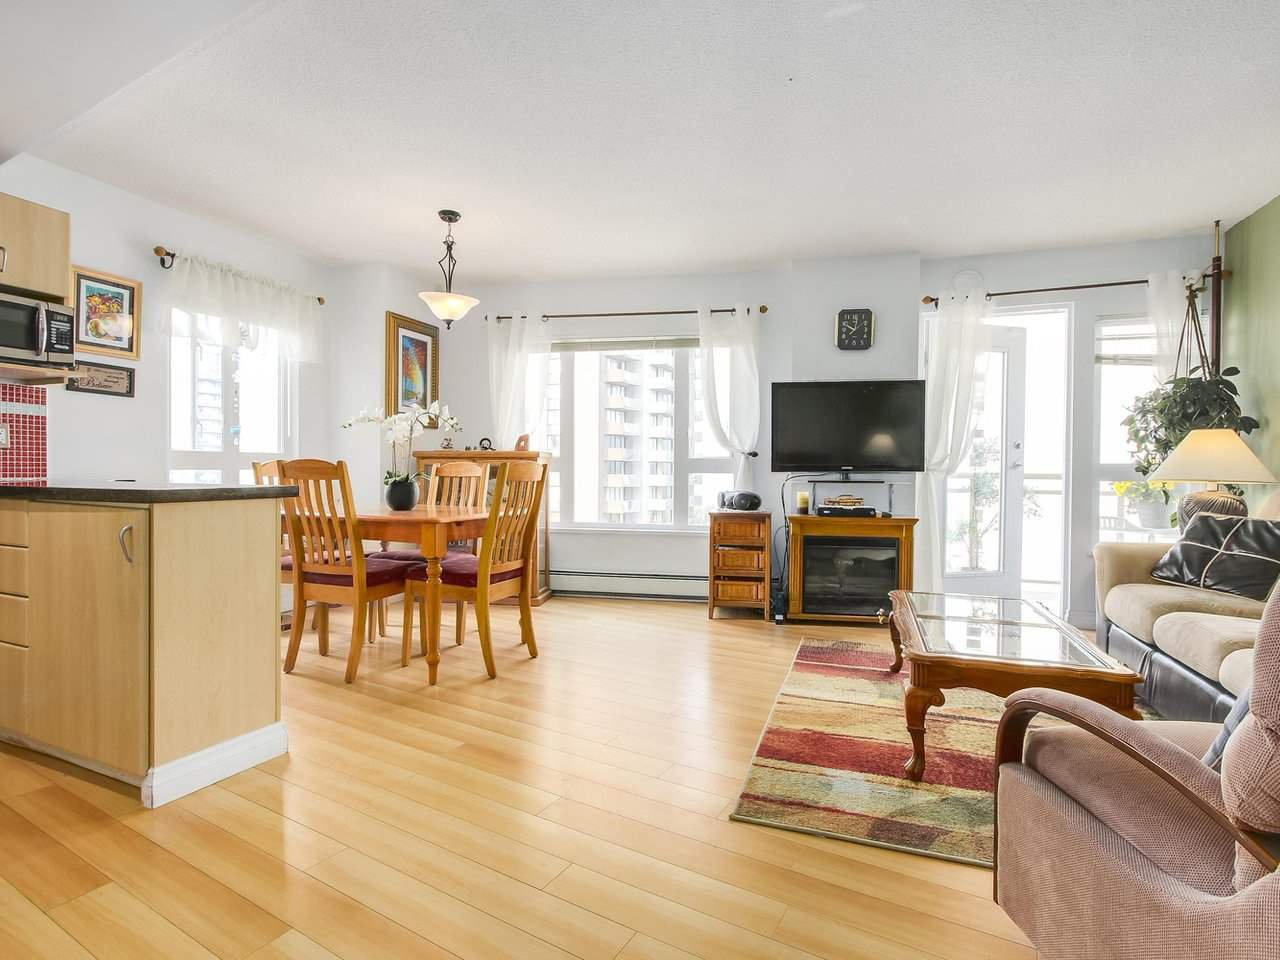 """Photo 9: Photos: 801 121 W 15TH Street in North Vancouver: Central Lonsdale Condo for sale in """"ALEGRIA"""" : MLS®# R2196958"""